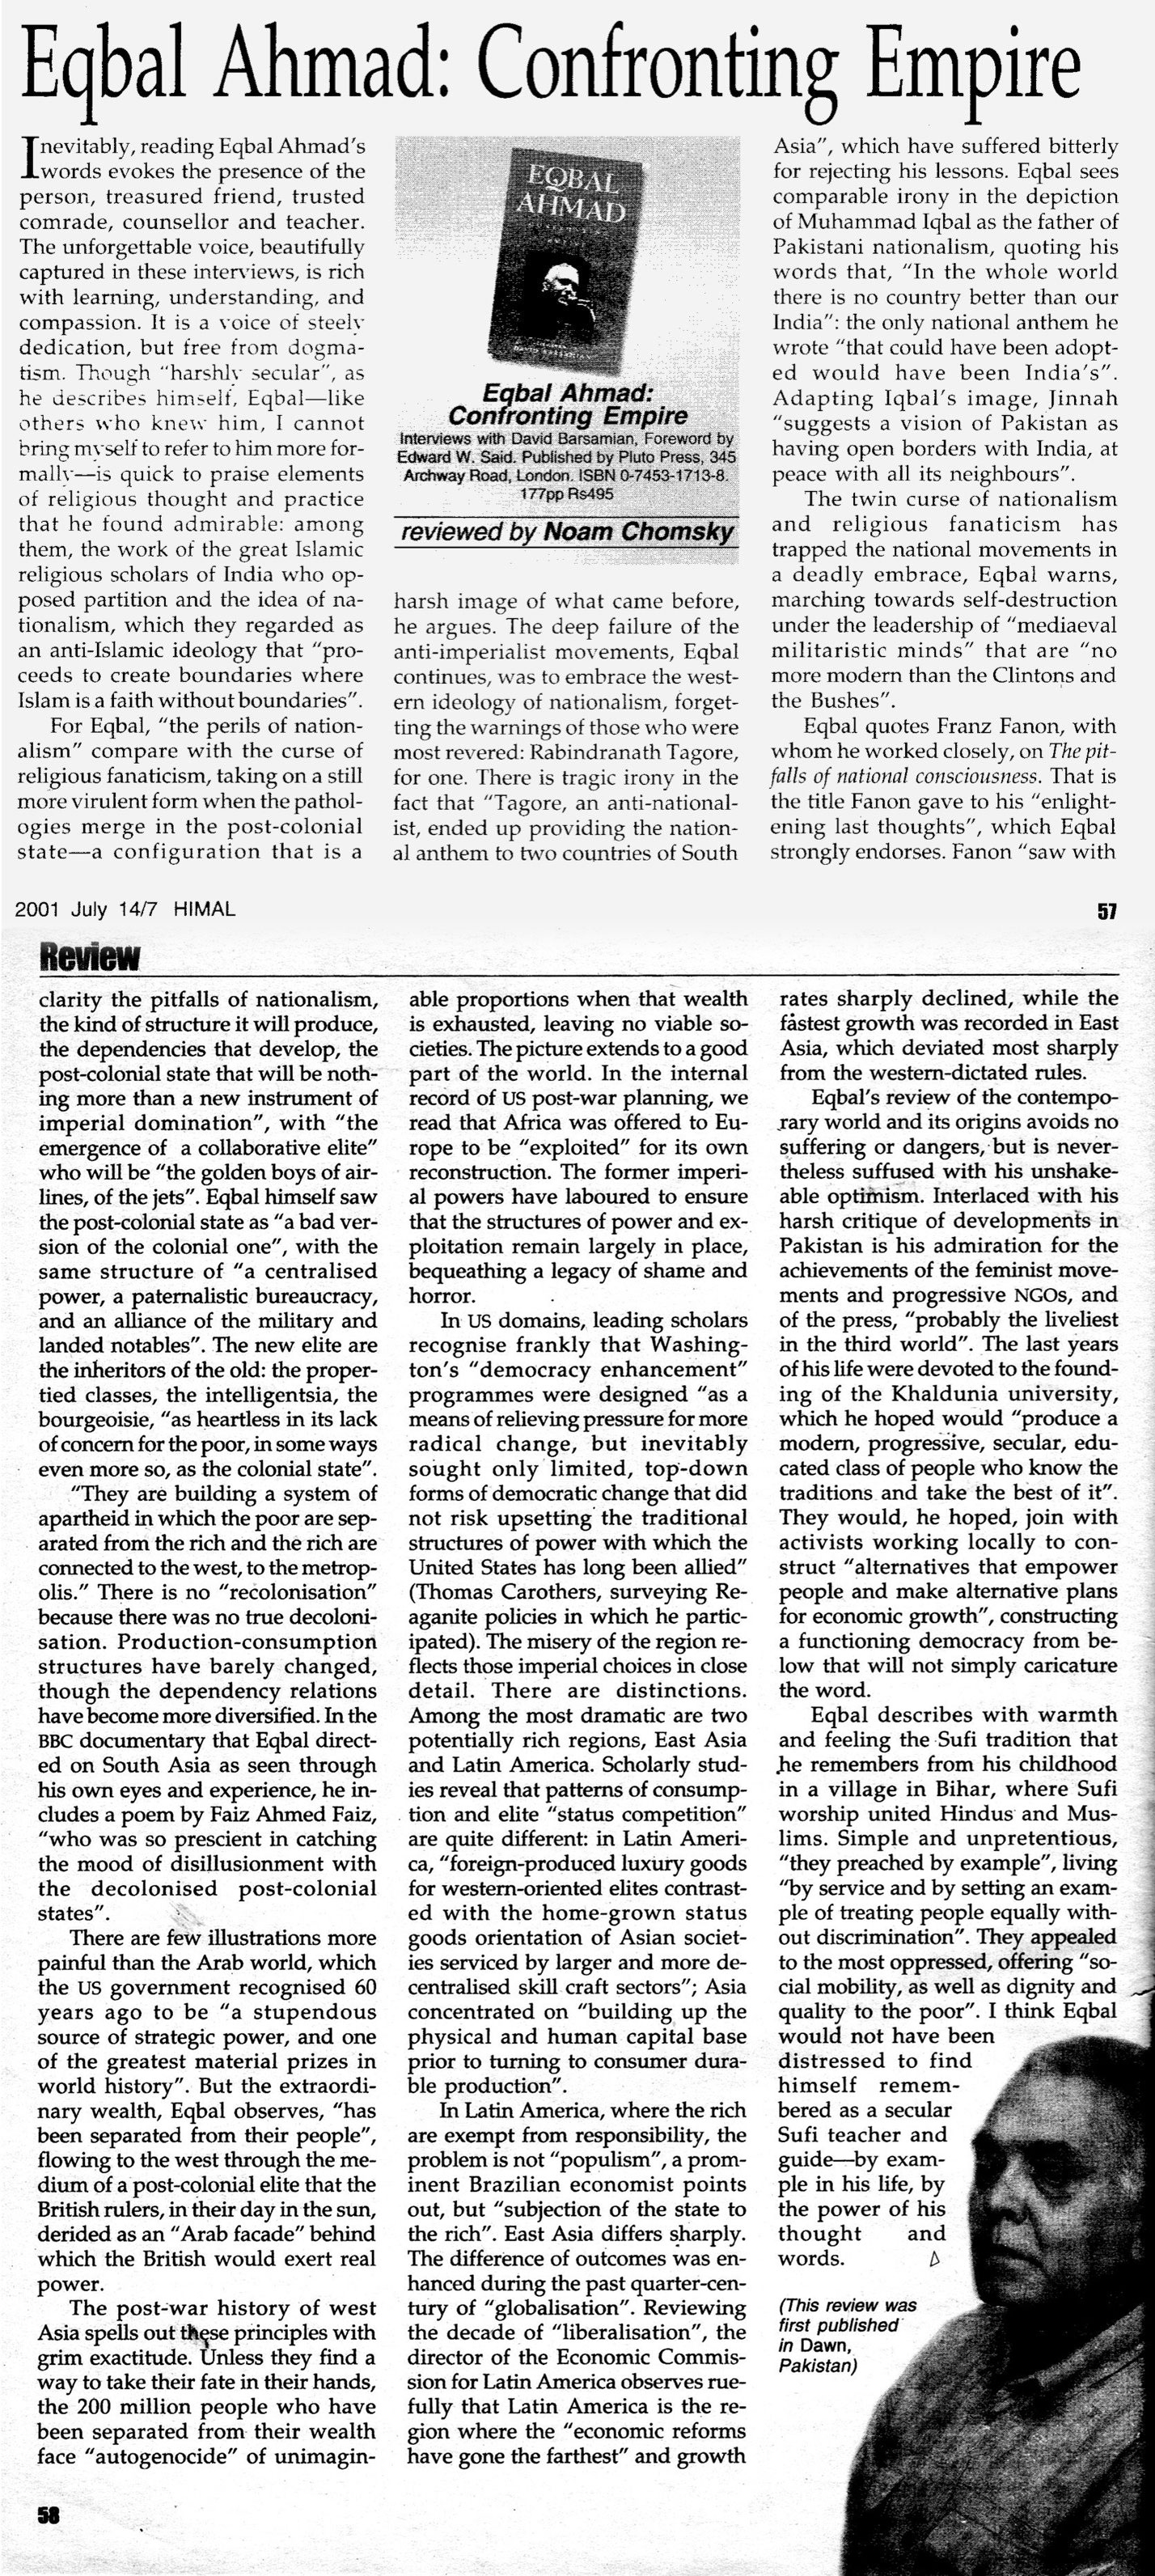 Confronting Empire newspaper scan